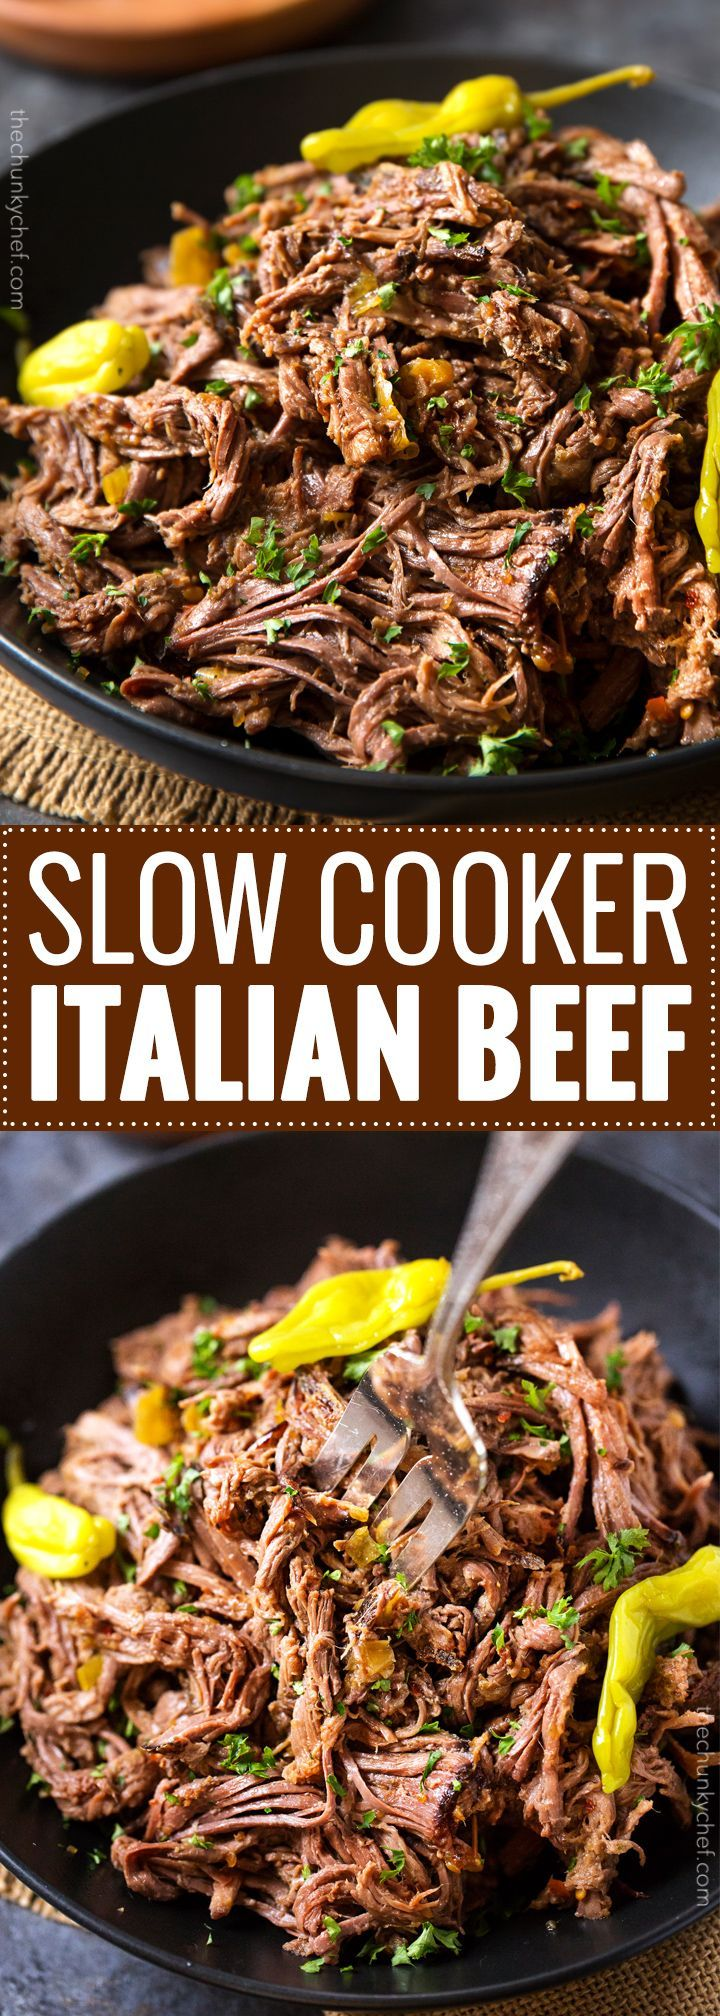 Slow Cooker Shredded Italian Beef | Tangy and spicy, this Italian beef is easily cooked in a slow cooker until fork tender, then shredded, for the ultimate in delicious easy weeknight dinners! | http://thechunkychef.com